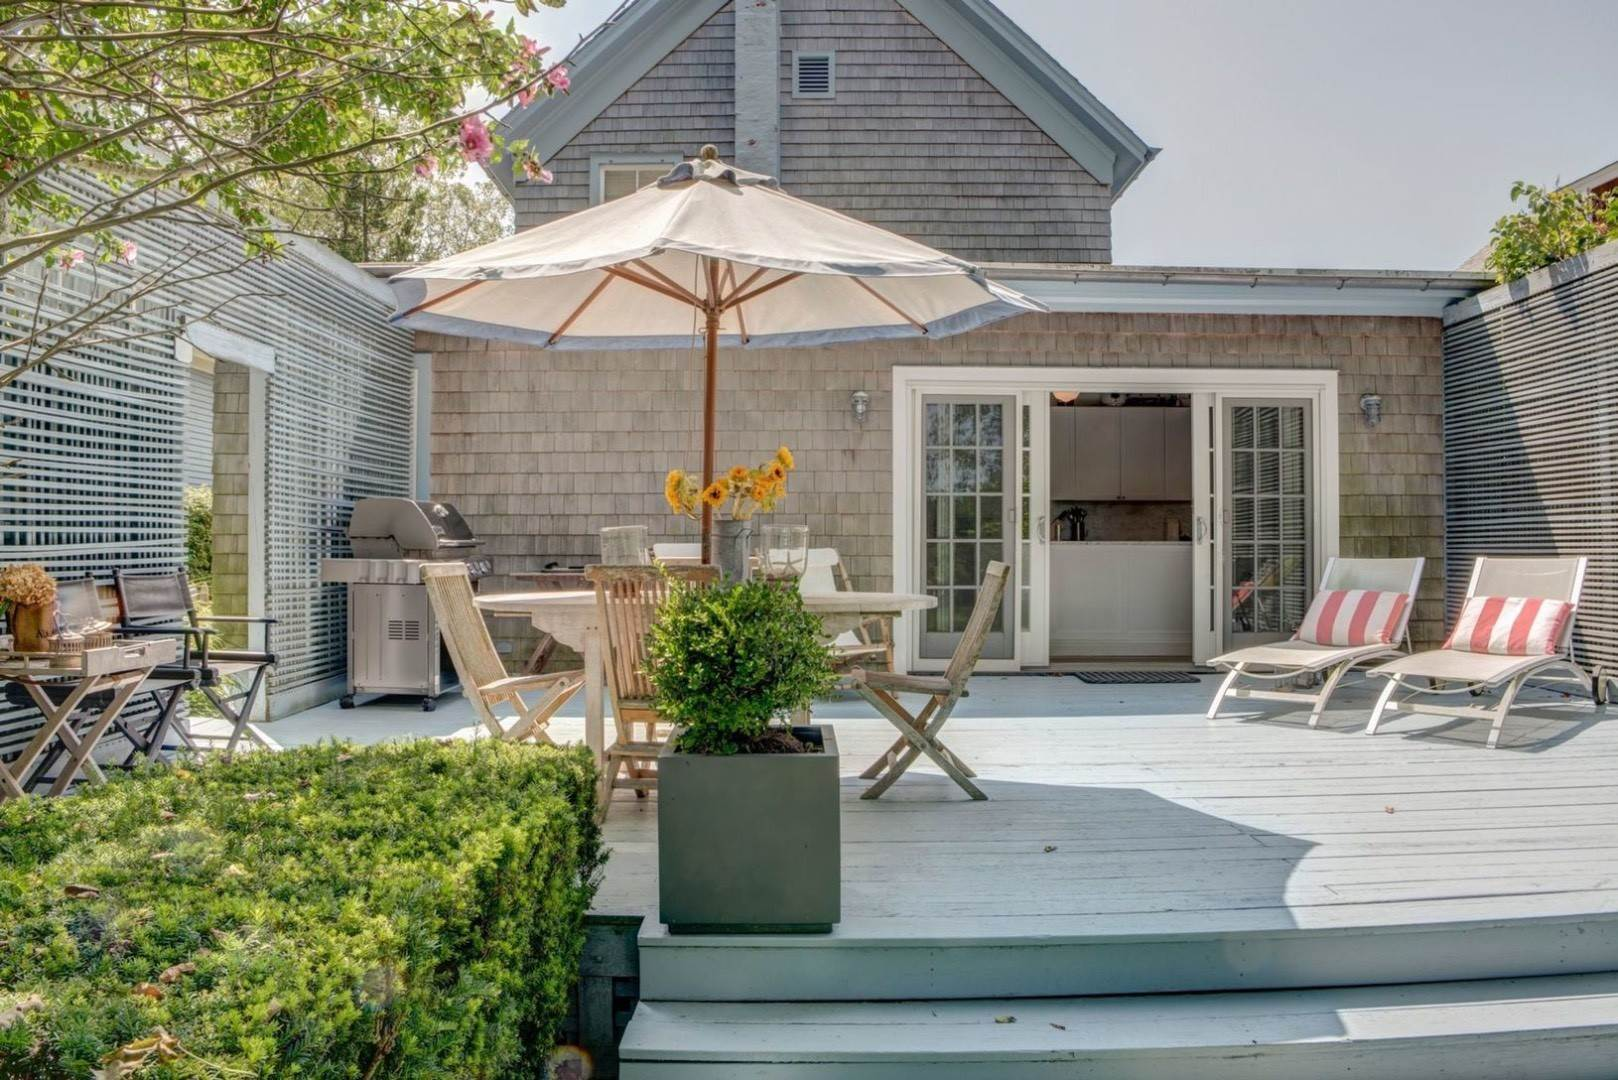 Single Family Home at Sag Harbor Village Rental Sag Harbor, NY 11963